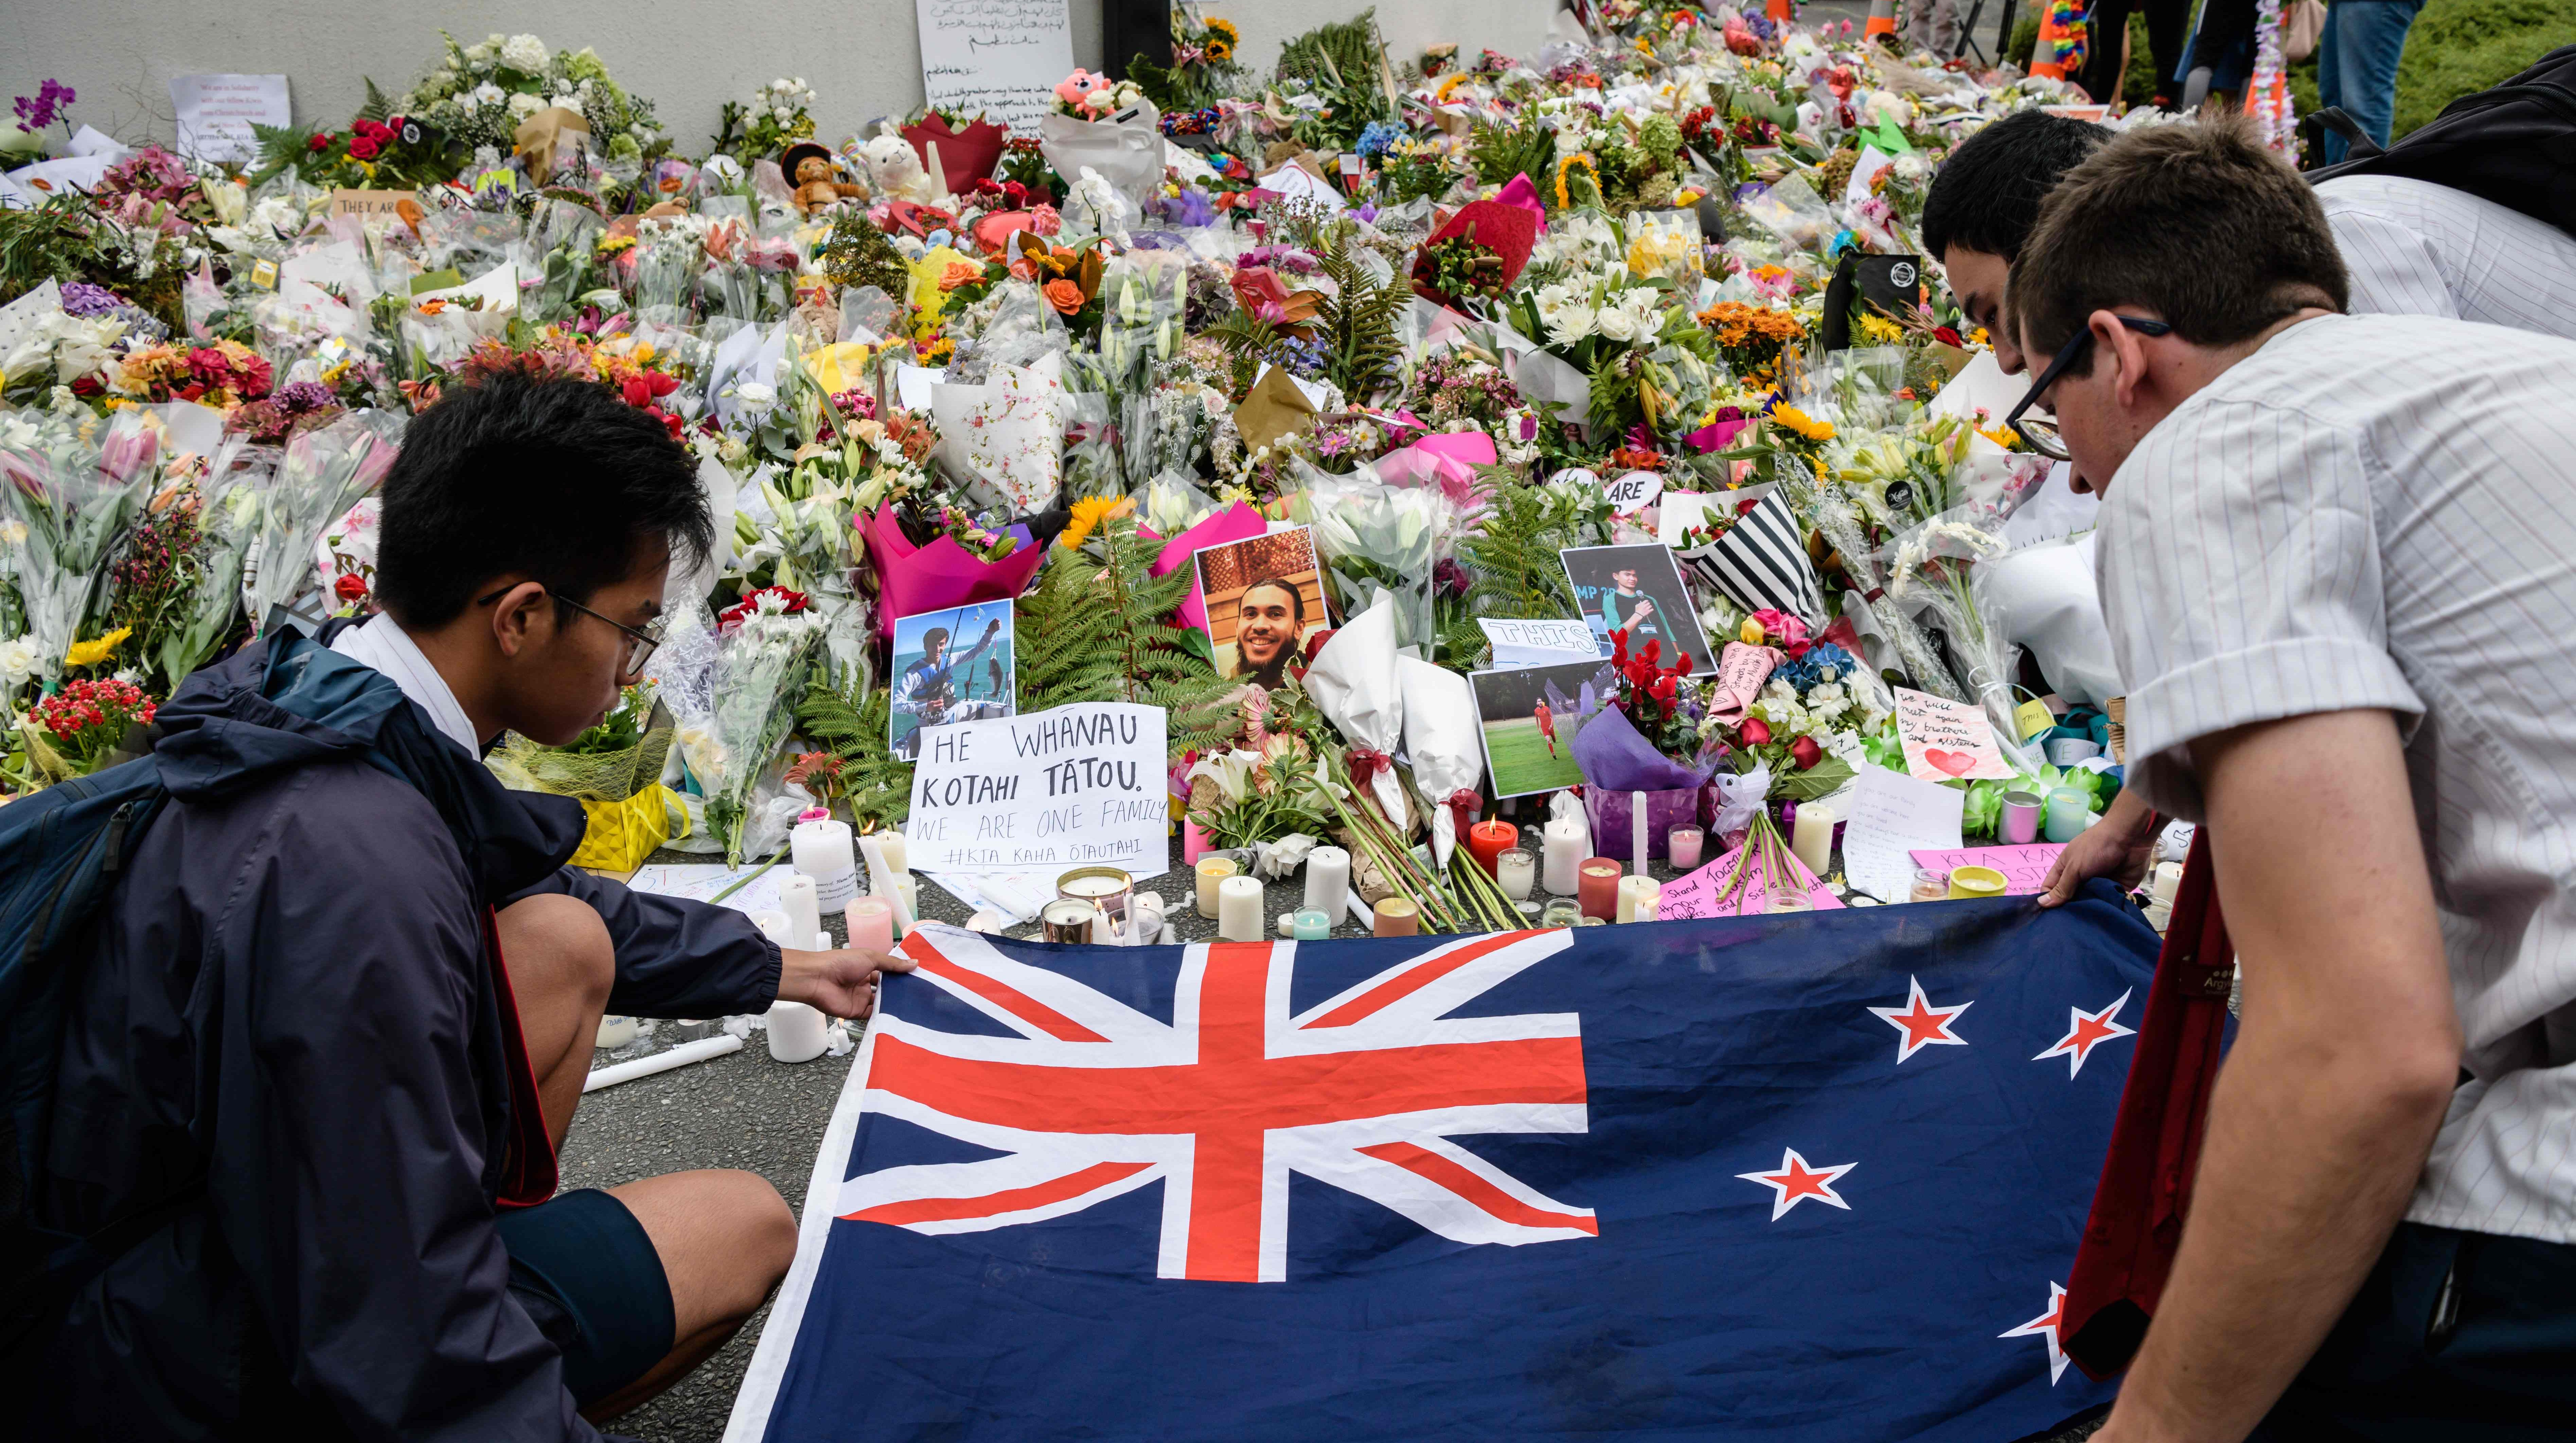 Students display the New Zealand national flag next to flowers during a vigil in Christchurch on March 18, 2019, three days after a shooting incident at two mosques in the city that claimed the lives of 50 Muslim worshippers.